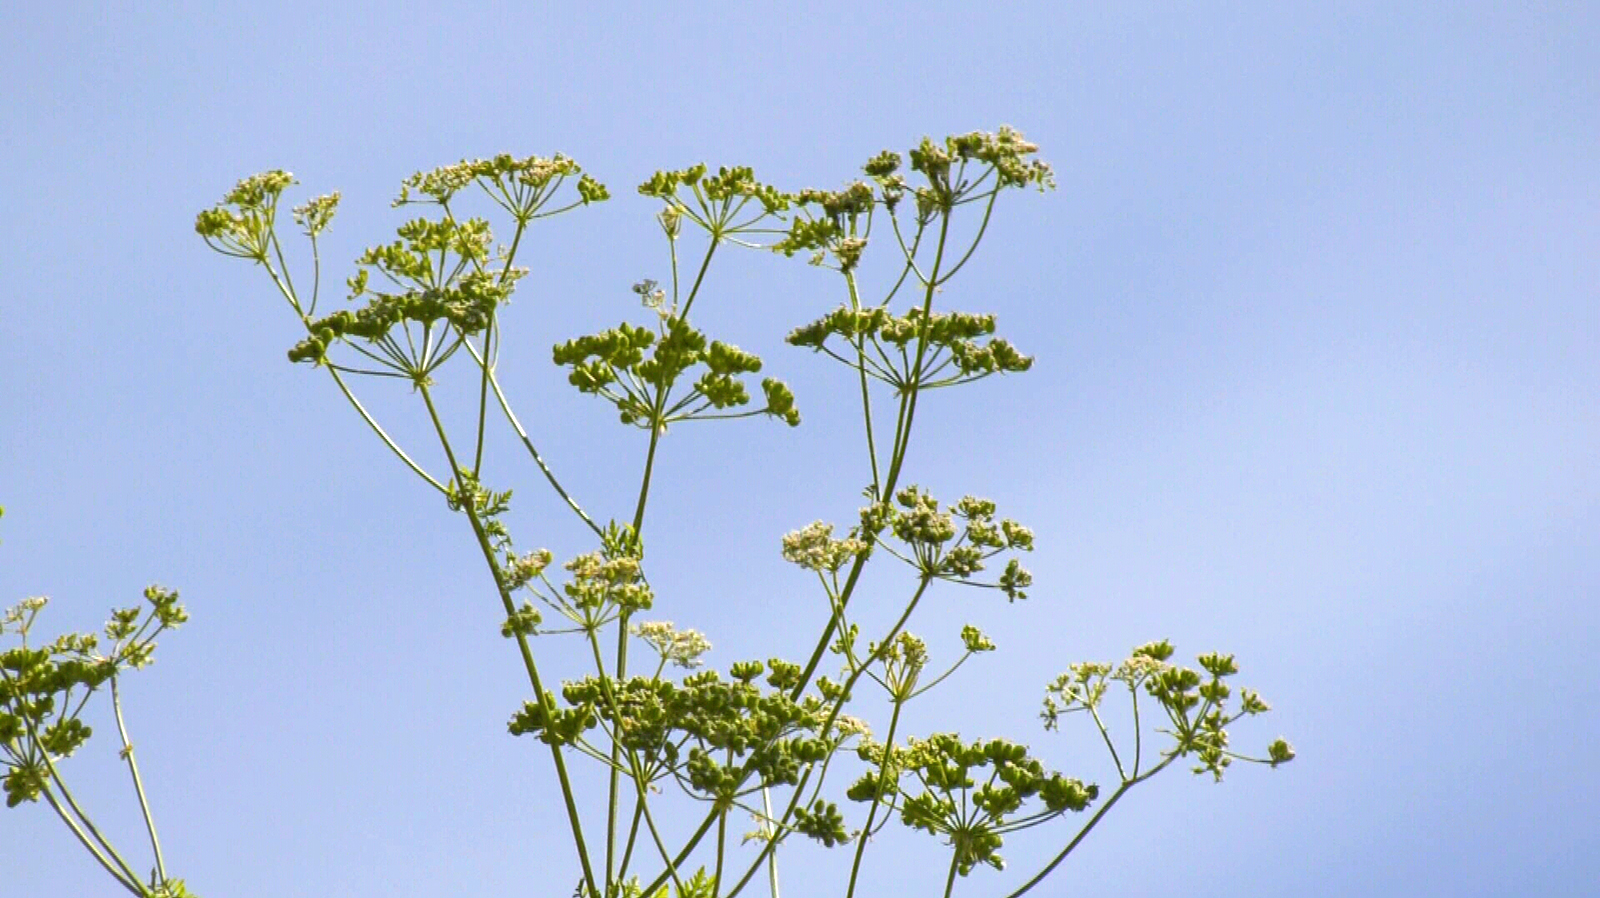 Invasive poison hemlock a growing concern on Vancouver